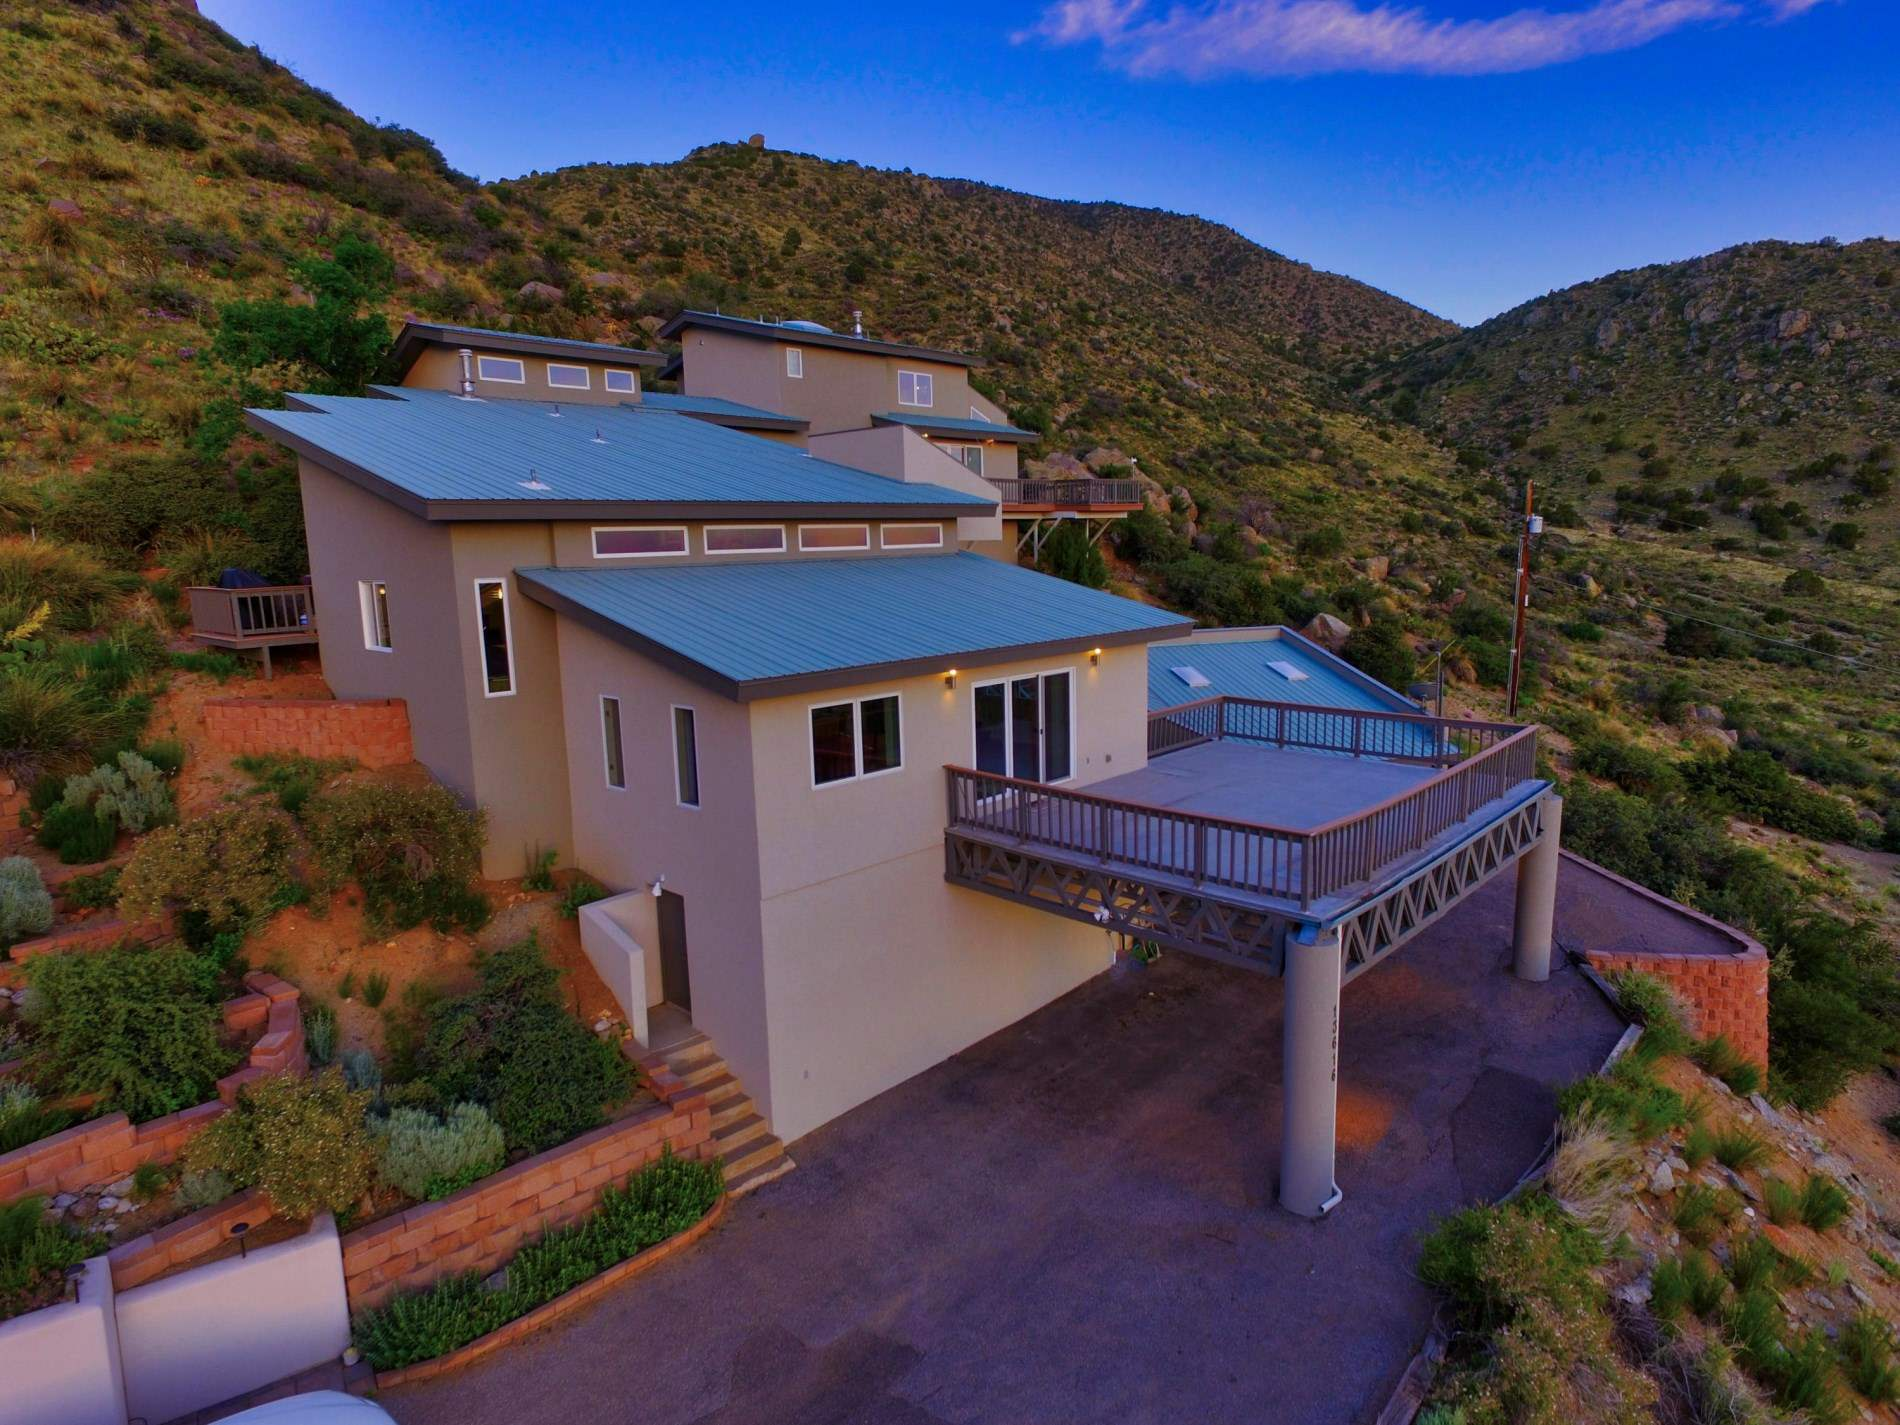 Contemporary living, modern elegance, & tranquility await you high up on the hill! An artistic and open floorplan. Offering unobstructed views as far as the eye can see! Sunset views of Mount Taylor adorn the evening sky. Surrounded by open space to the east & south and direct access to walking trails.. This unique custom split level home is a certified wildlife habitat and frequently enjoys visits from a wide variety of animals. The complete remodel brings modern color and flair to this amazing dream home!  Designed by a local architect to be his own personal domicile, great care was taken to capture the best views & take maximum advantage of the solar gains. Enjoy the magnificent custom etched glass mountain landscape that accents the living area. There are 4 separate decks surrounding the home to maximize outdoor living space. The open floor plan makes this home ideal for entertaining. There are 2 REFRIGERATED AIR units! The master bedroom is located on the upper level and is separate from the other bedrooms. The master bath boasts teakwood sinks and tub. Grab your favorite drink and your cuddle buddy and enjoy the private pati  The open floor plan makes this home ideal for entertaining. There are 2 REFRIGERATED AIR units! The master bedroom is located on the upper level and is separate from the other bedrooms. The master bath boasts teakwood sinks and tub. Grab your favorite drink and your cuddle buddy and enjoy the private patio space! The views are unbeatable! Cheers!